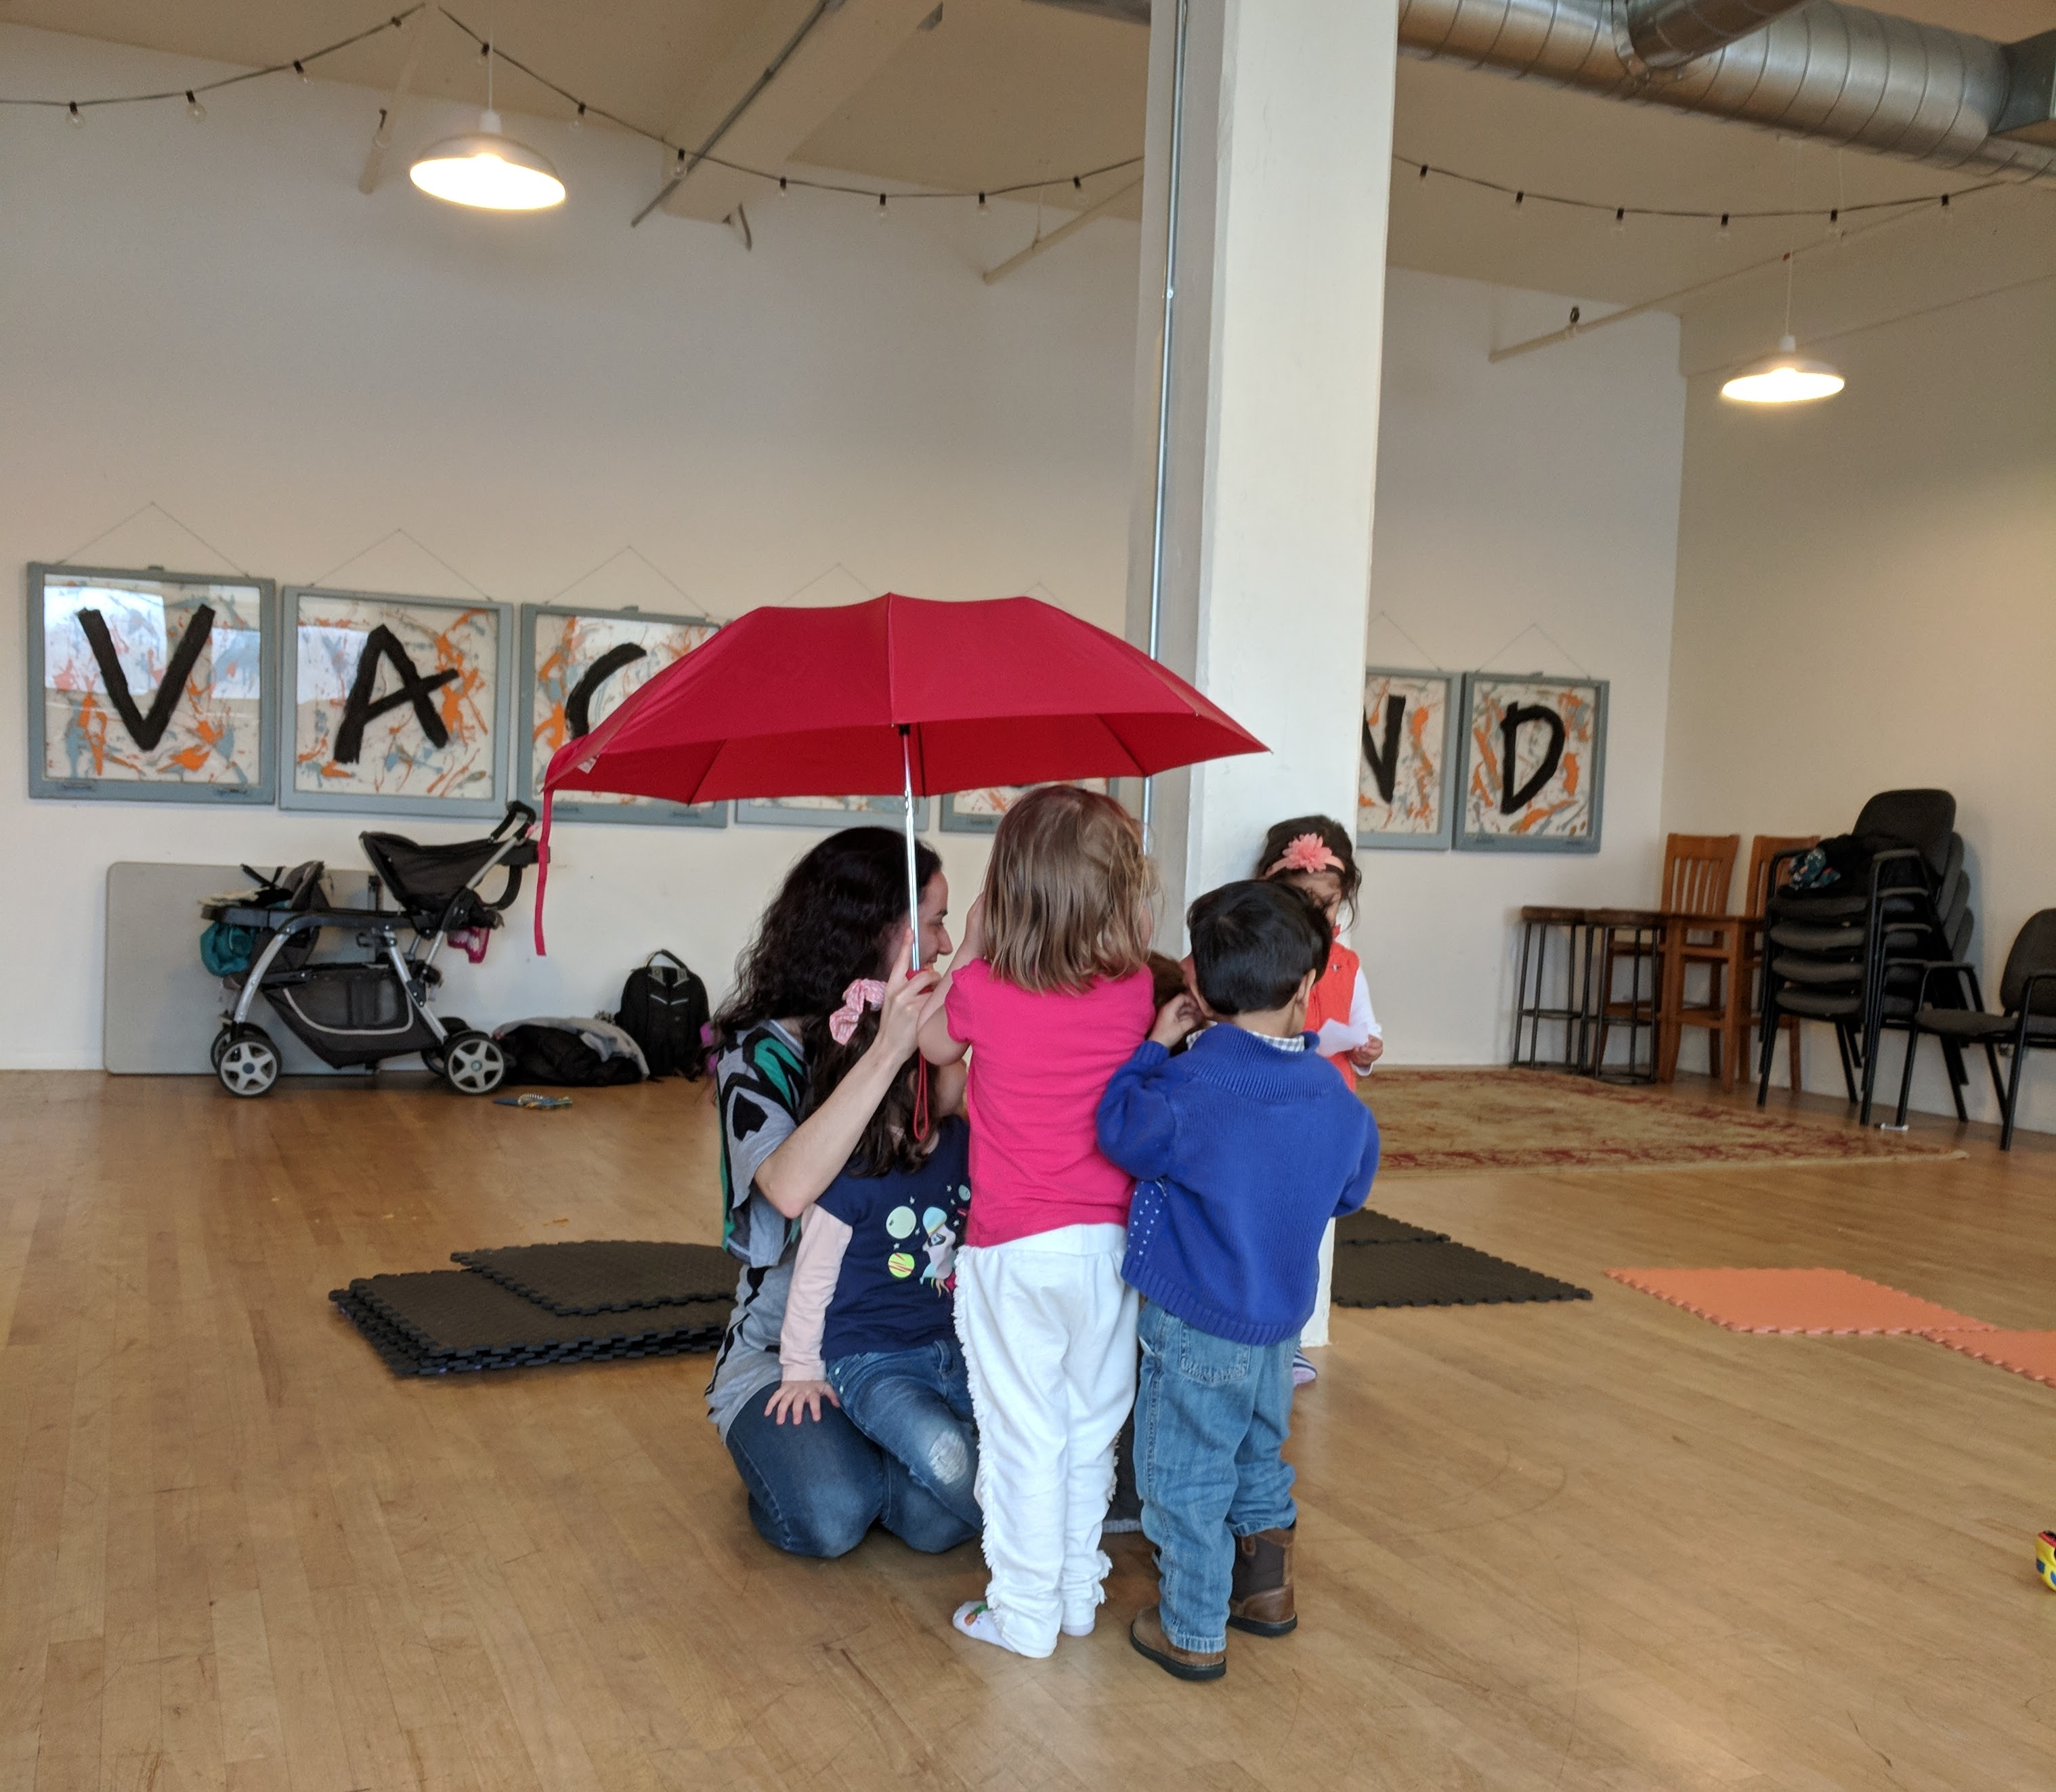 children standing under an umbrella